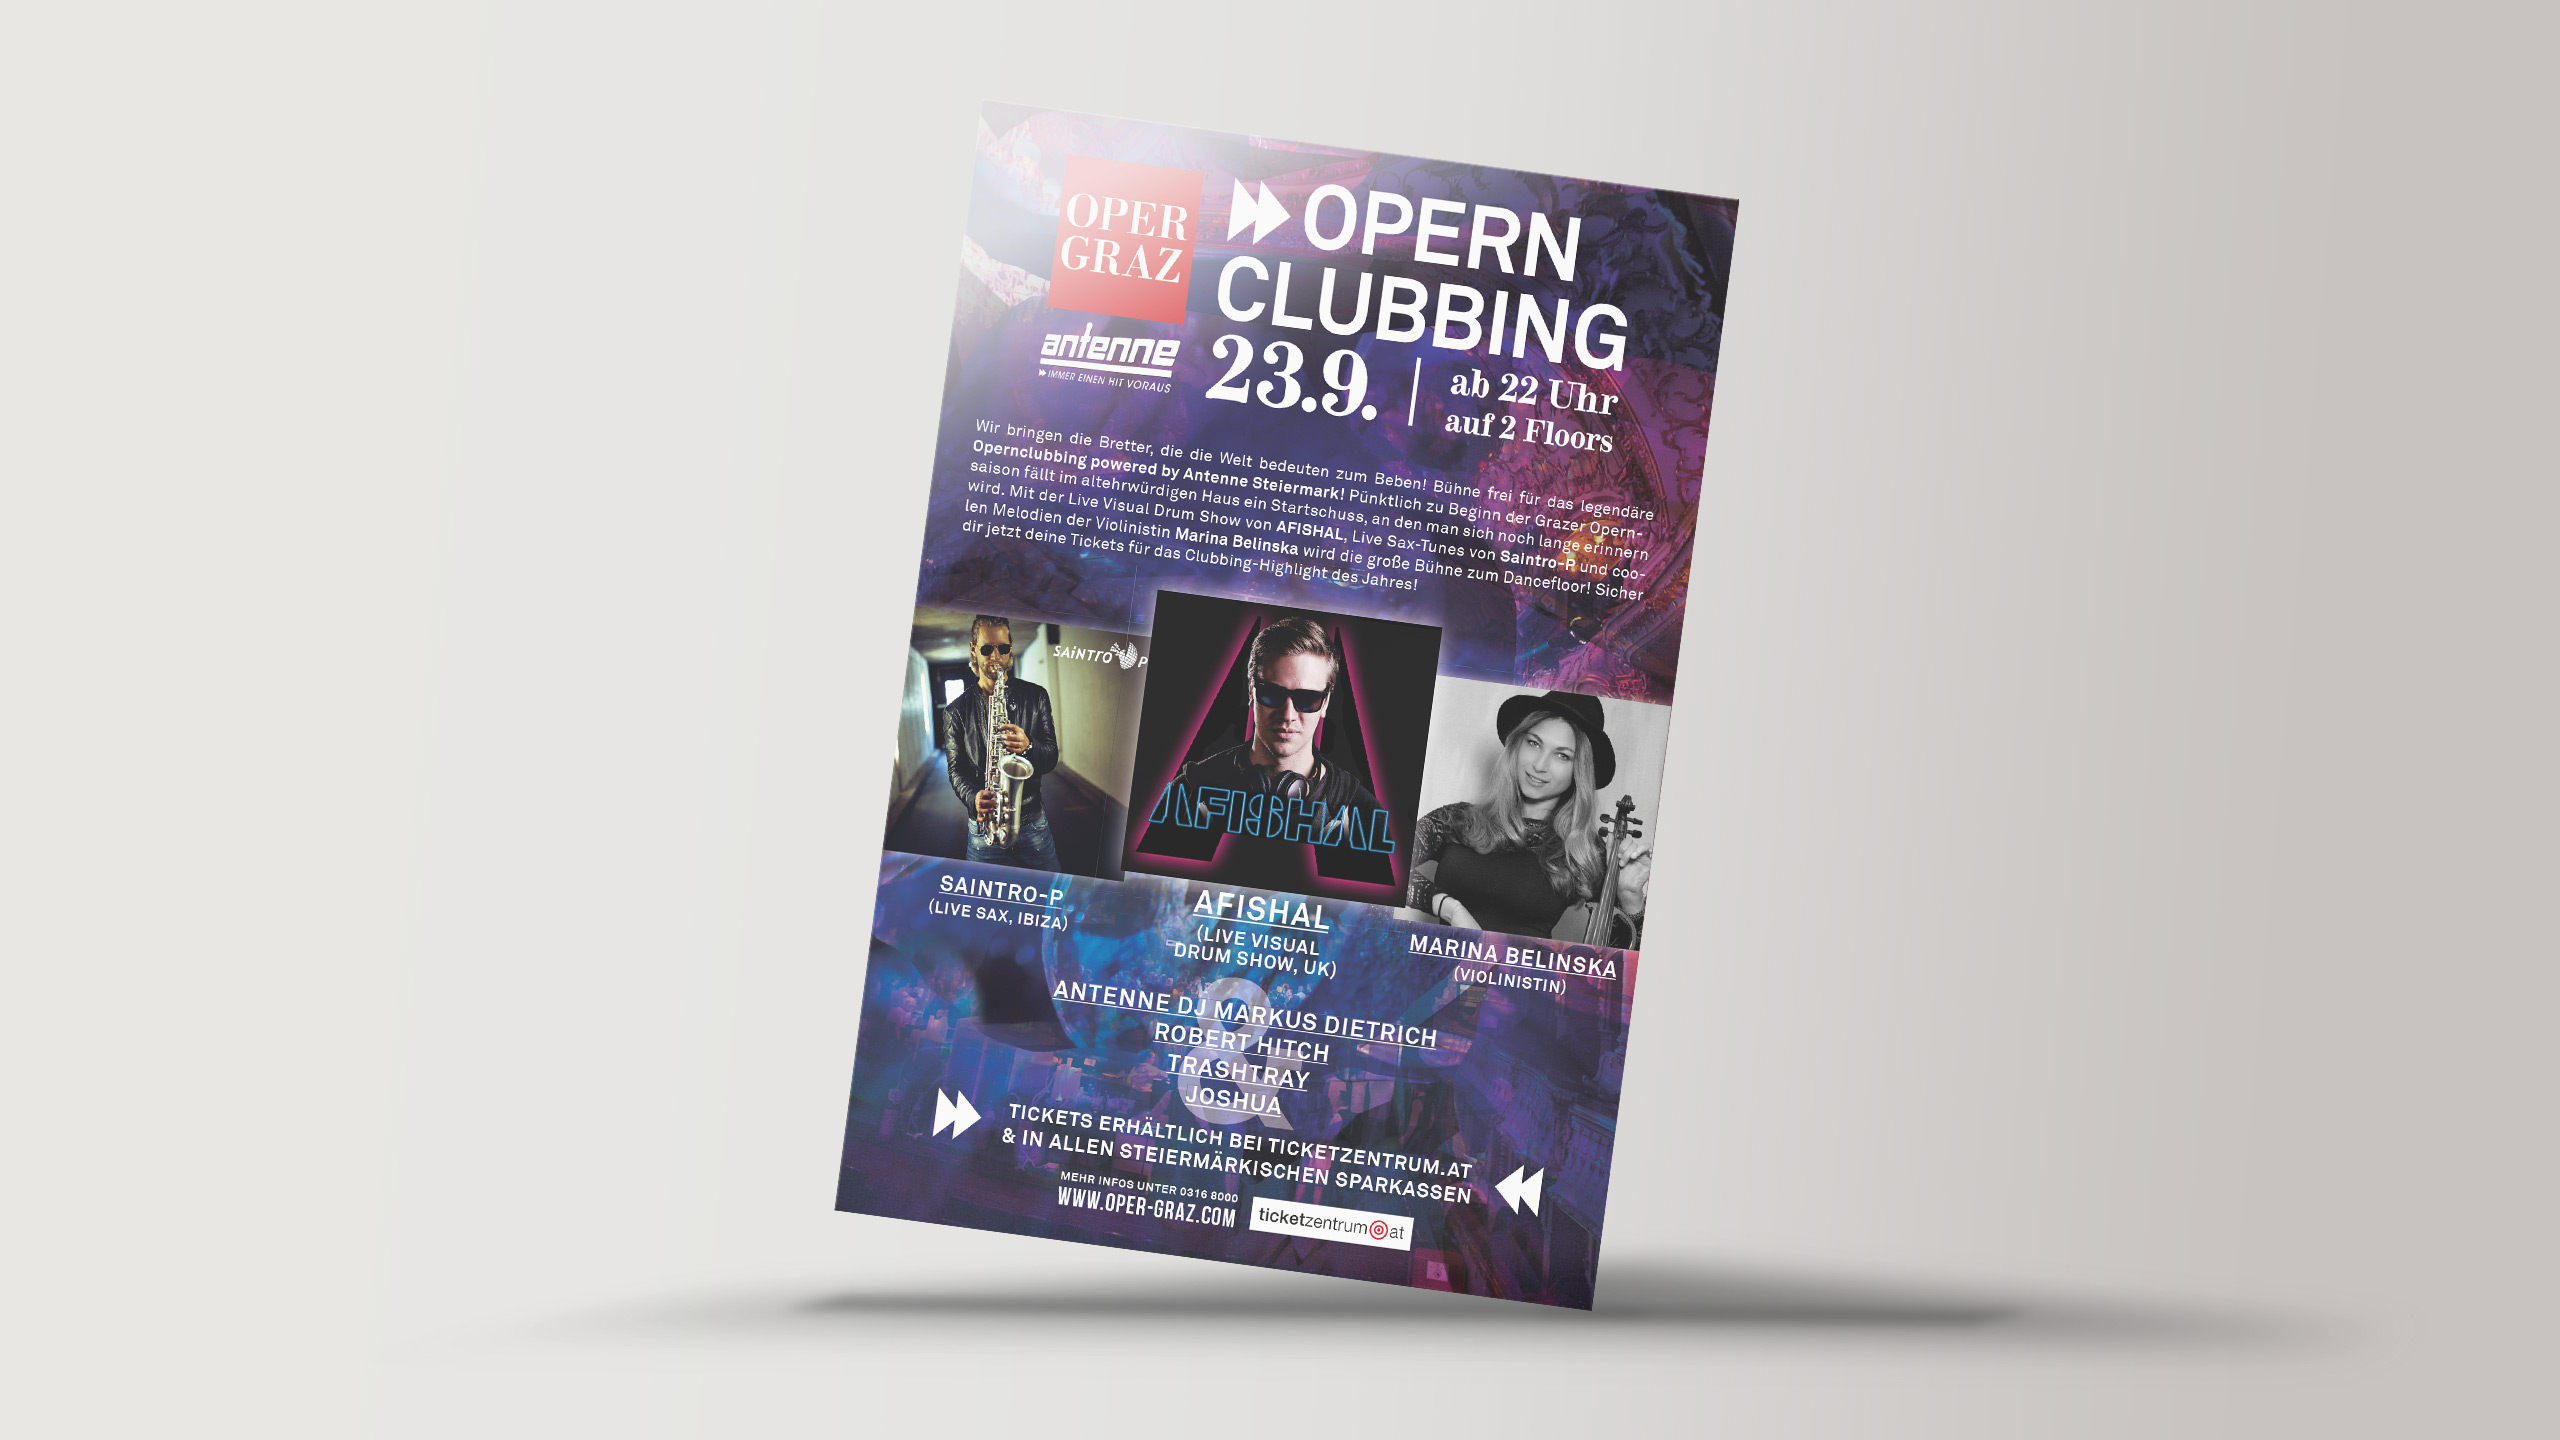 Opernclubbing-Event-Flyer-RS